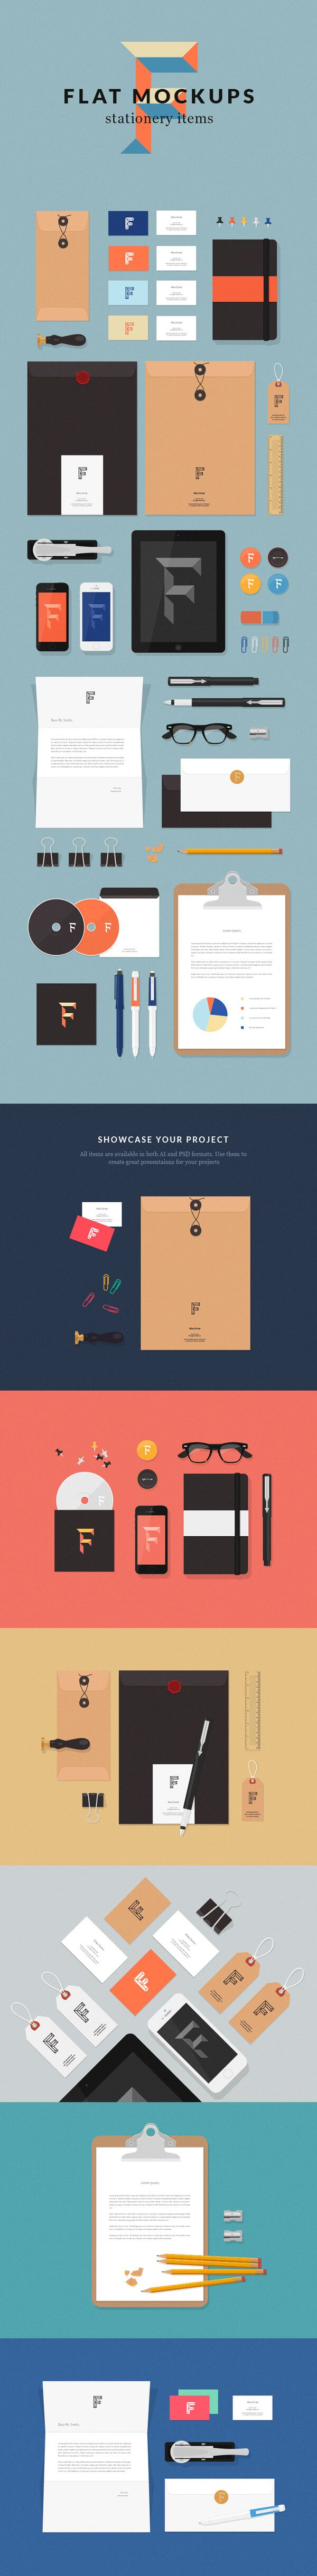 Flat MockUps – Stationery Items